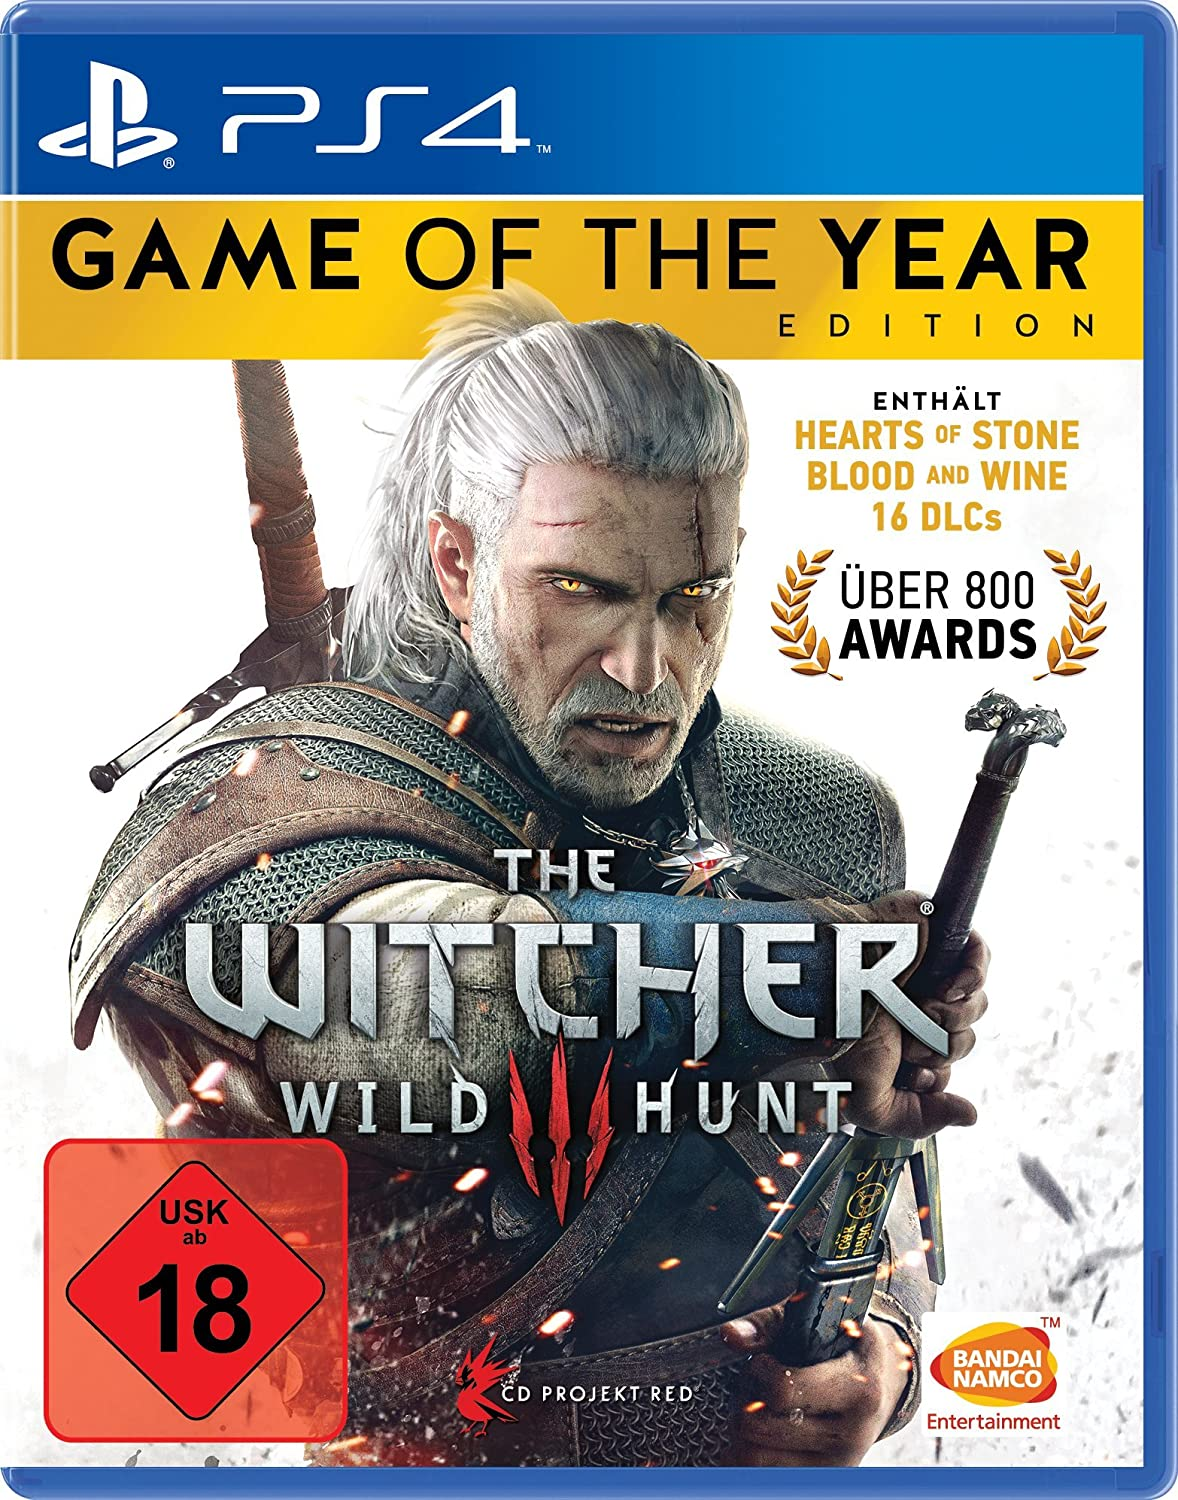 The Witcher 3 amazon PS4